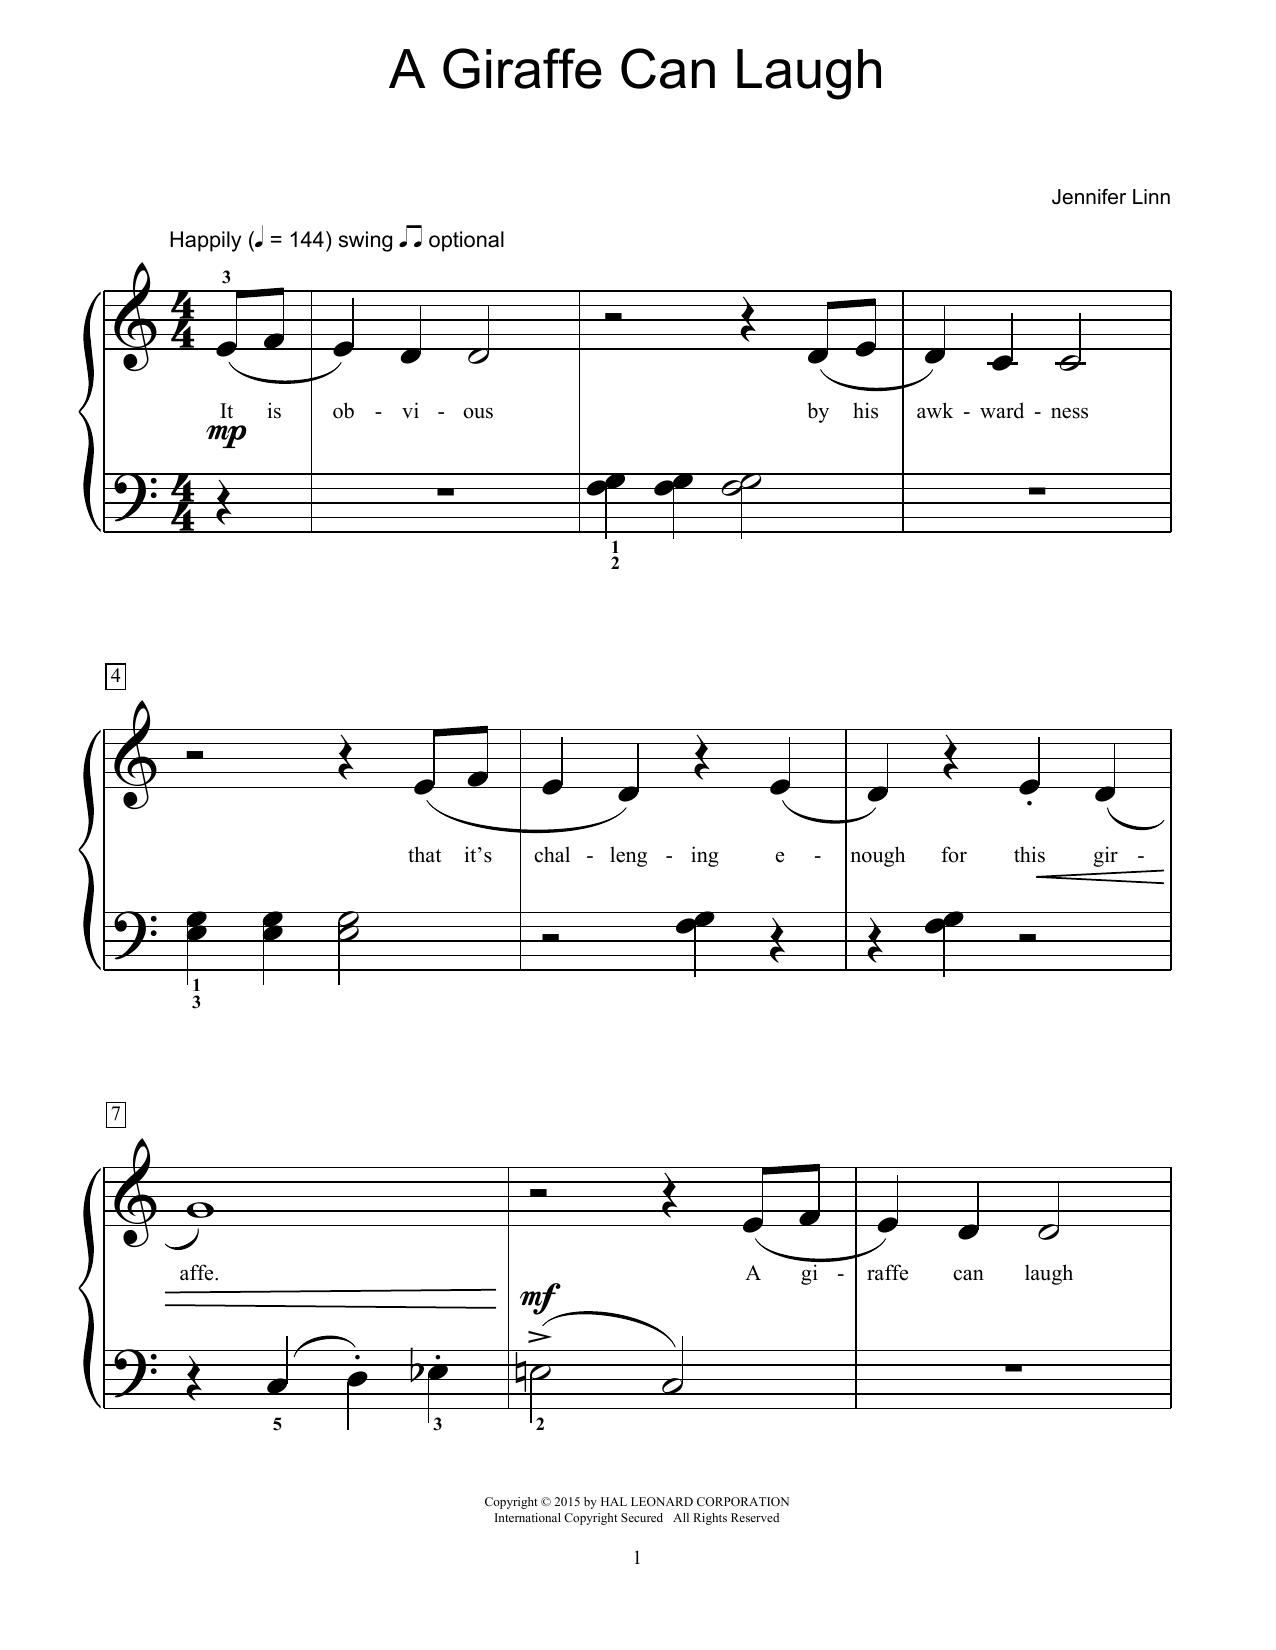 A Giraffe Can Laugh Sheet Music